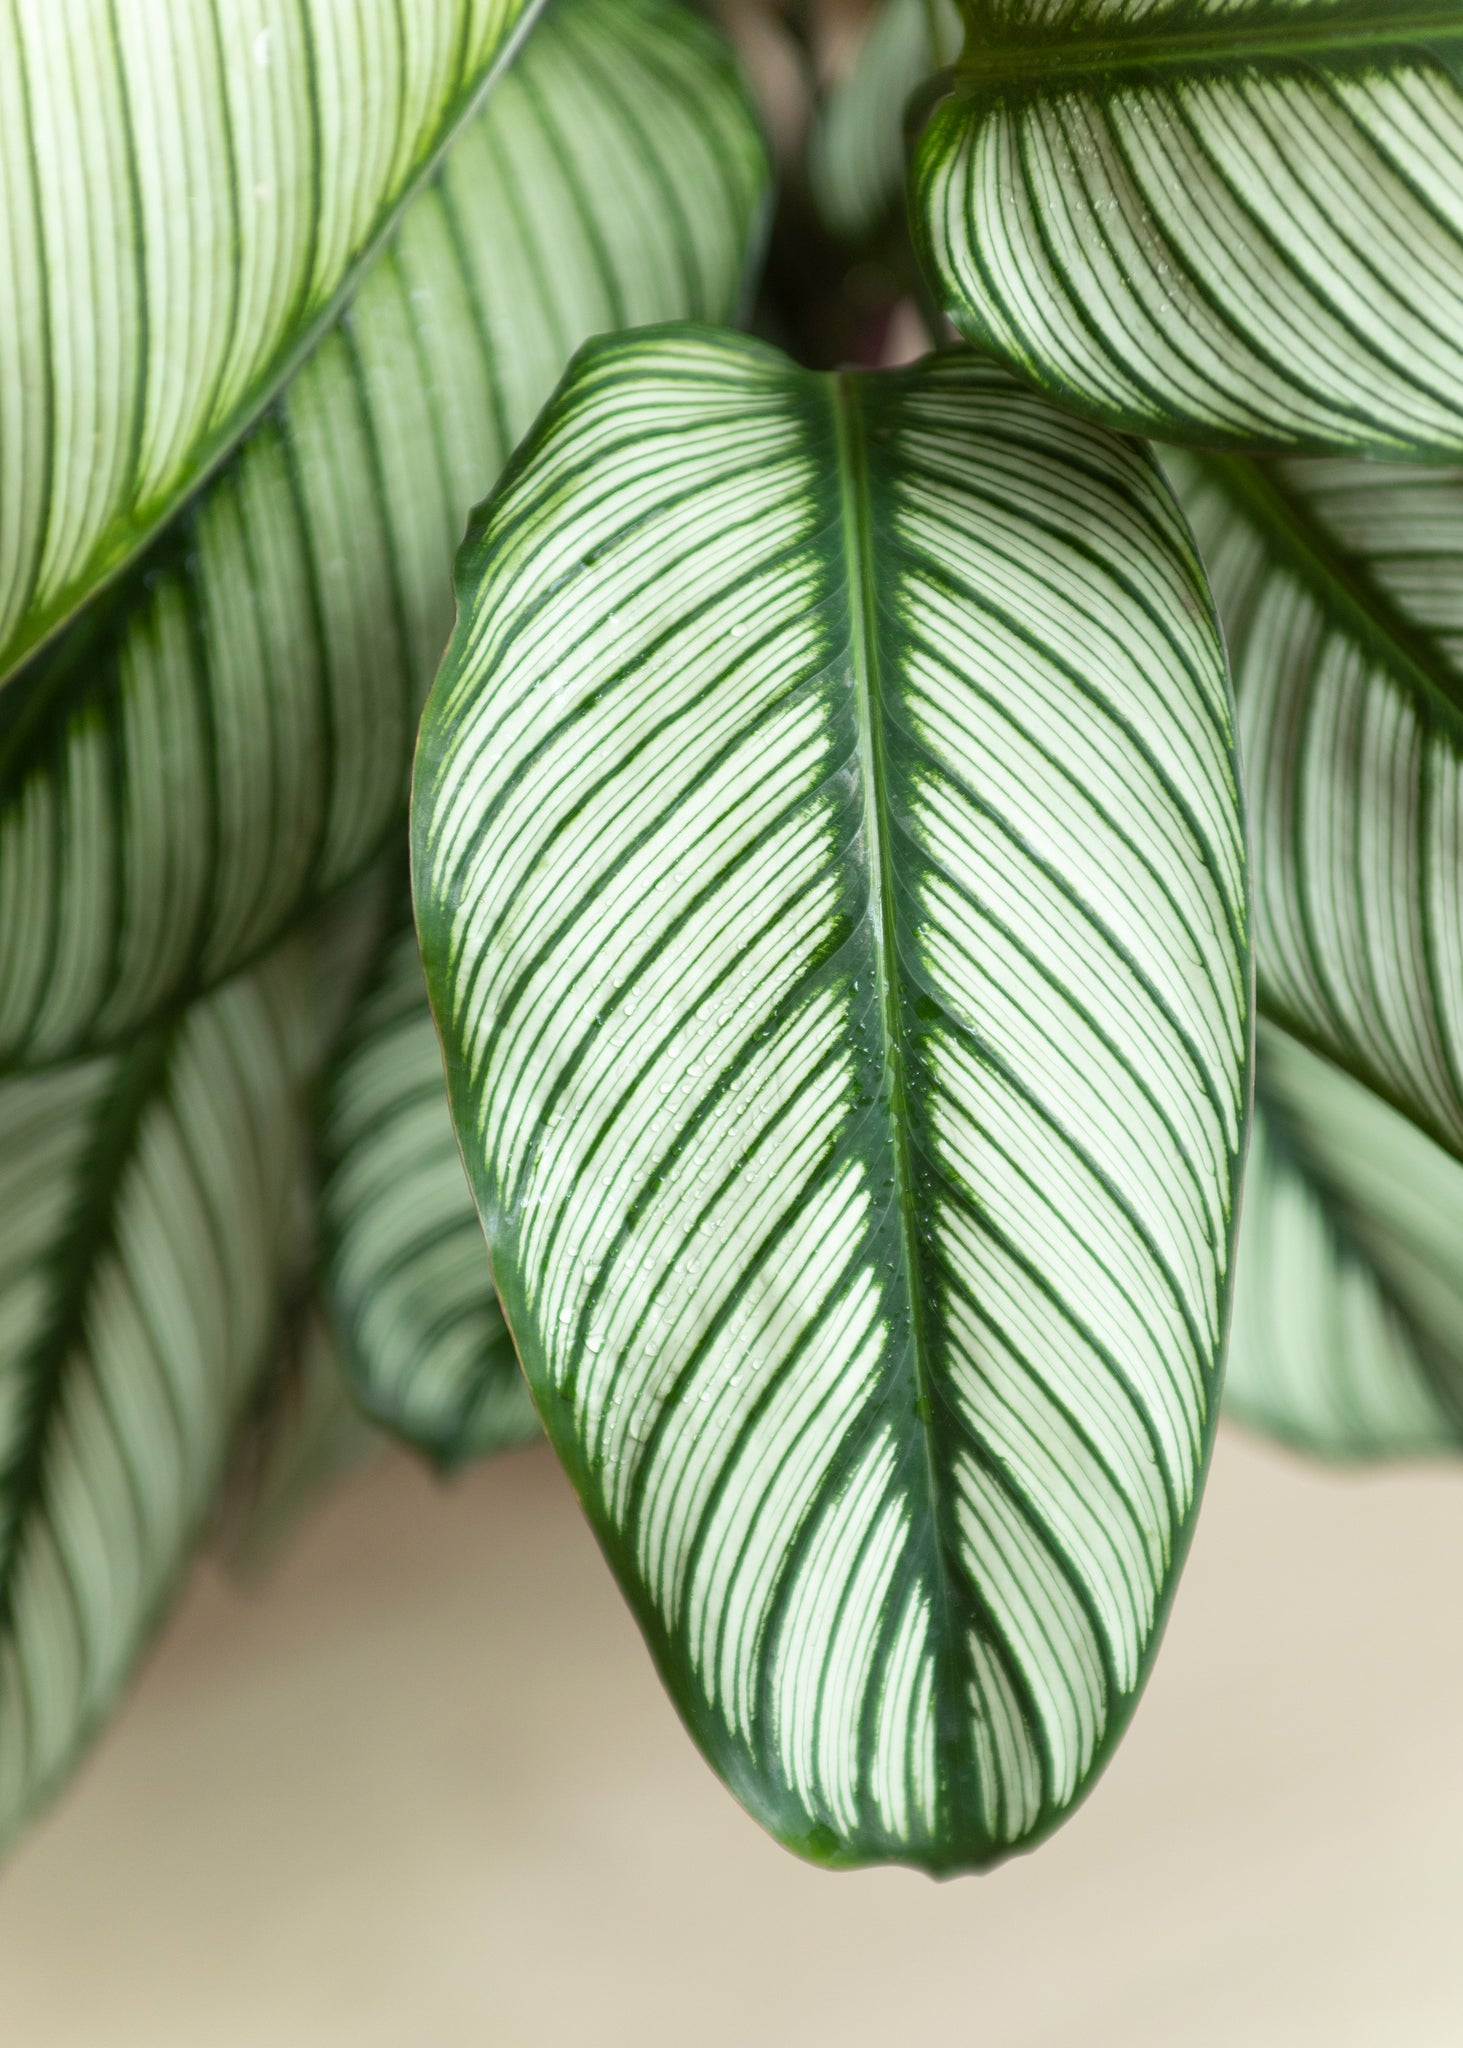 Calathea White star